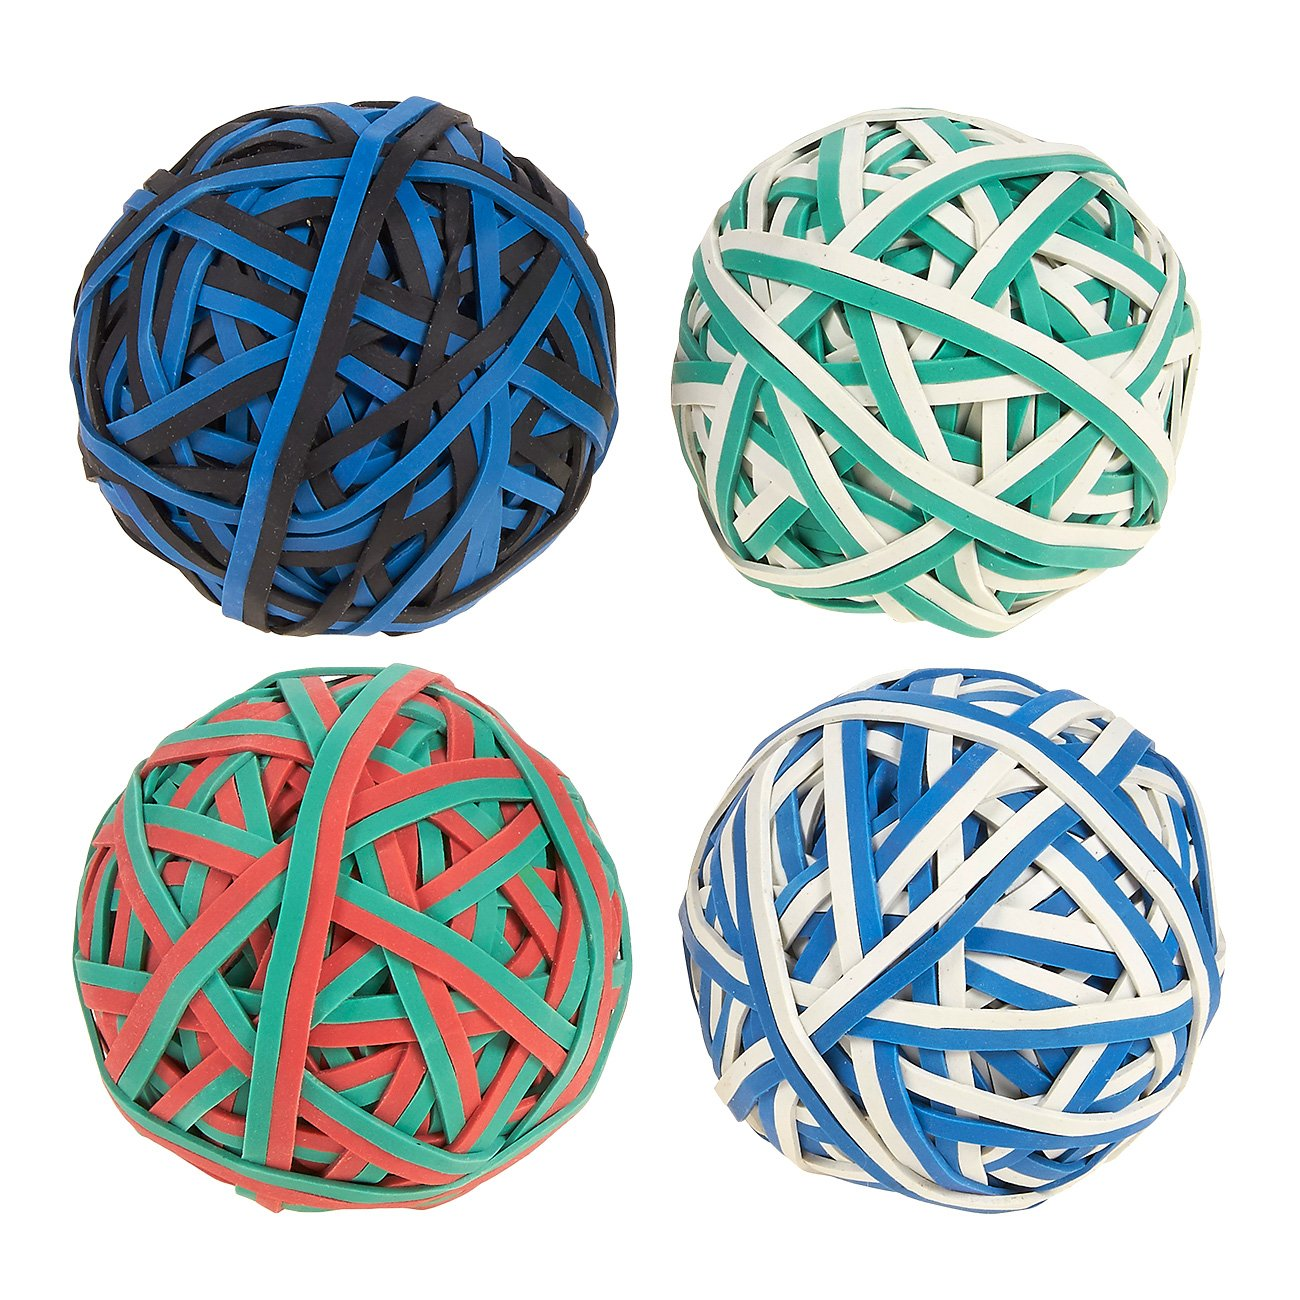 Set of 4 Colorful Rubber Band Balls - Elastic Rubber Bands Pack, Rubber Band Balls DIY, Arts & Crafts, Document Organizing, White, Green, Black, Red, Blue